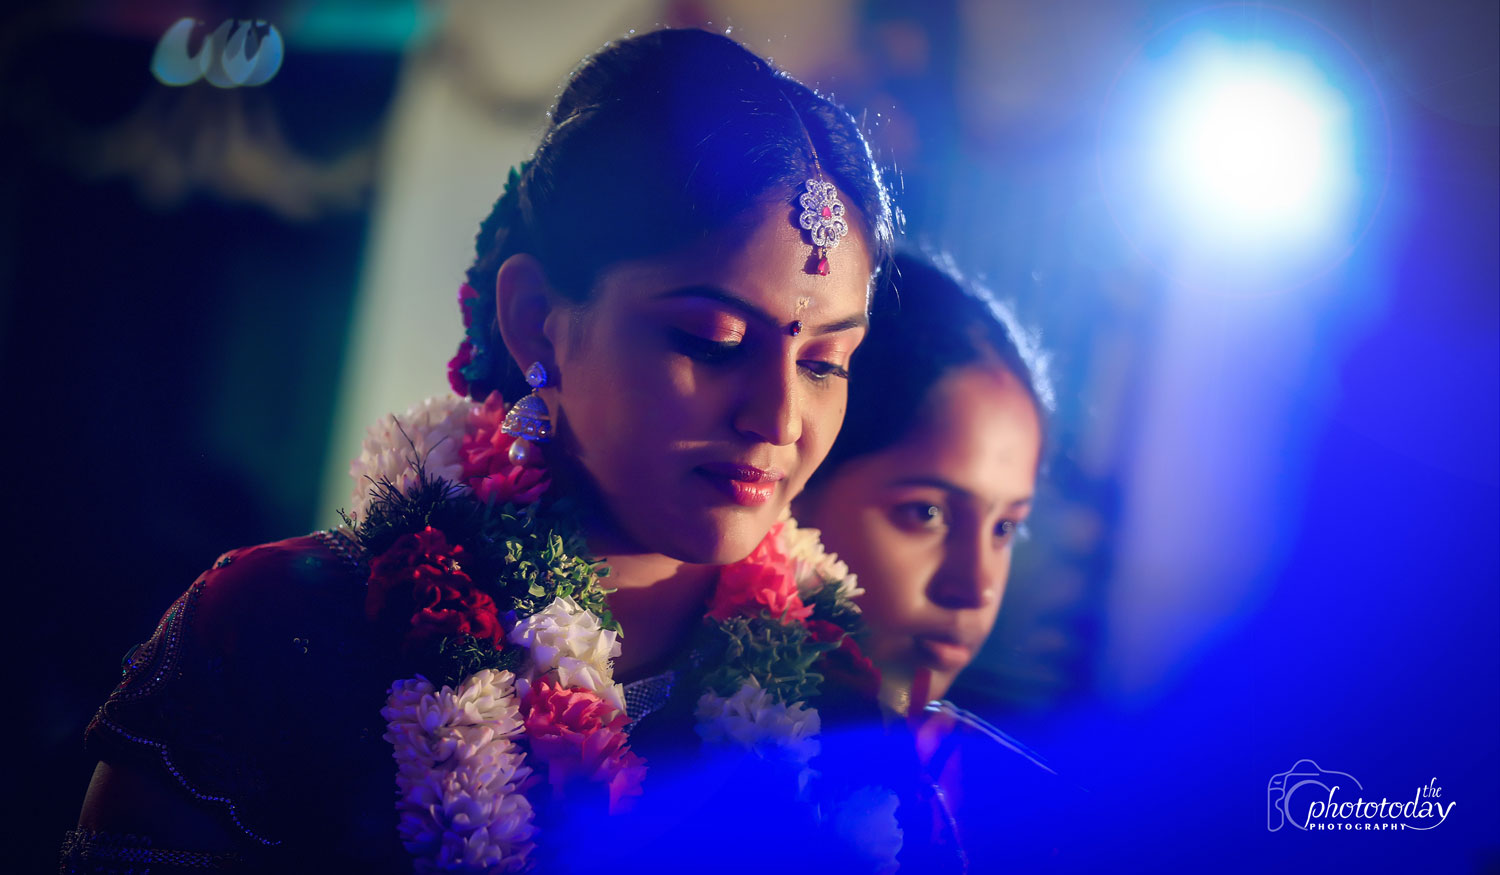 Candid-wedding-photography-33